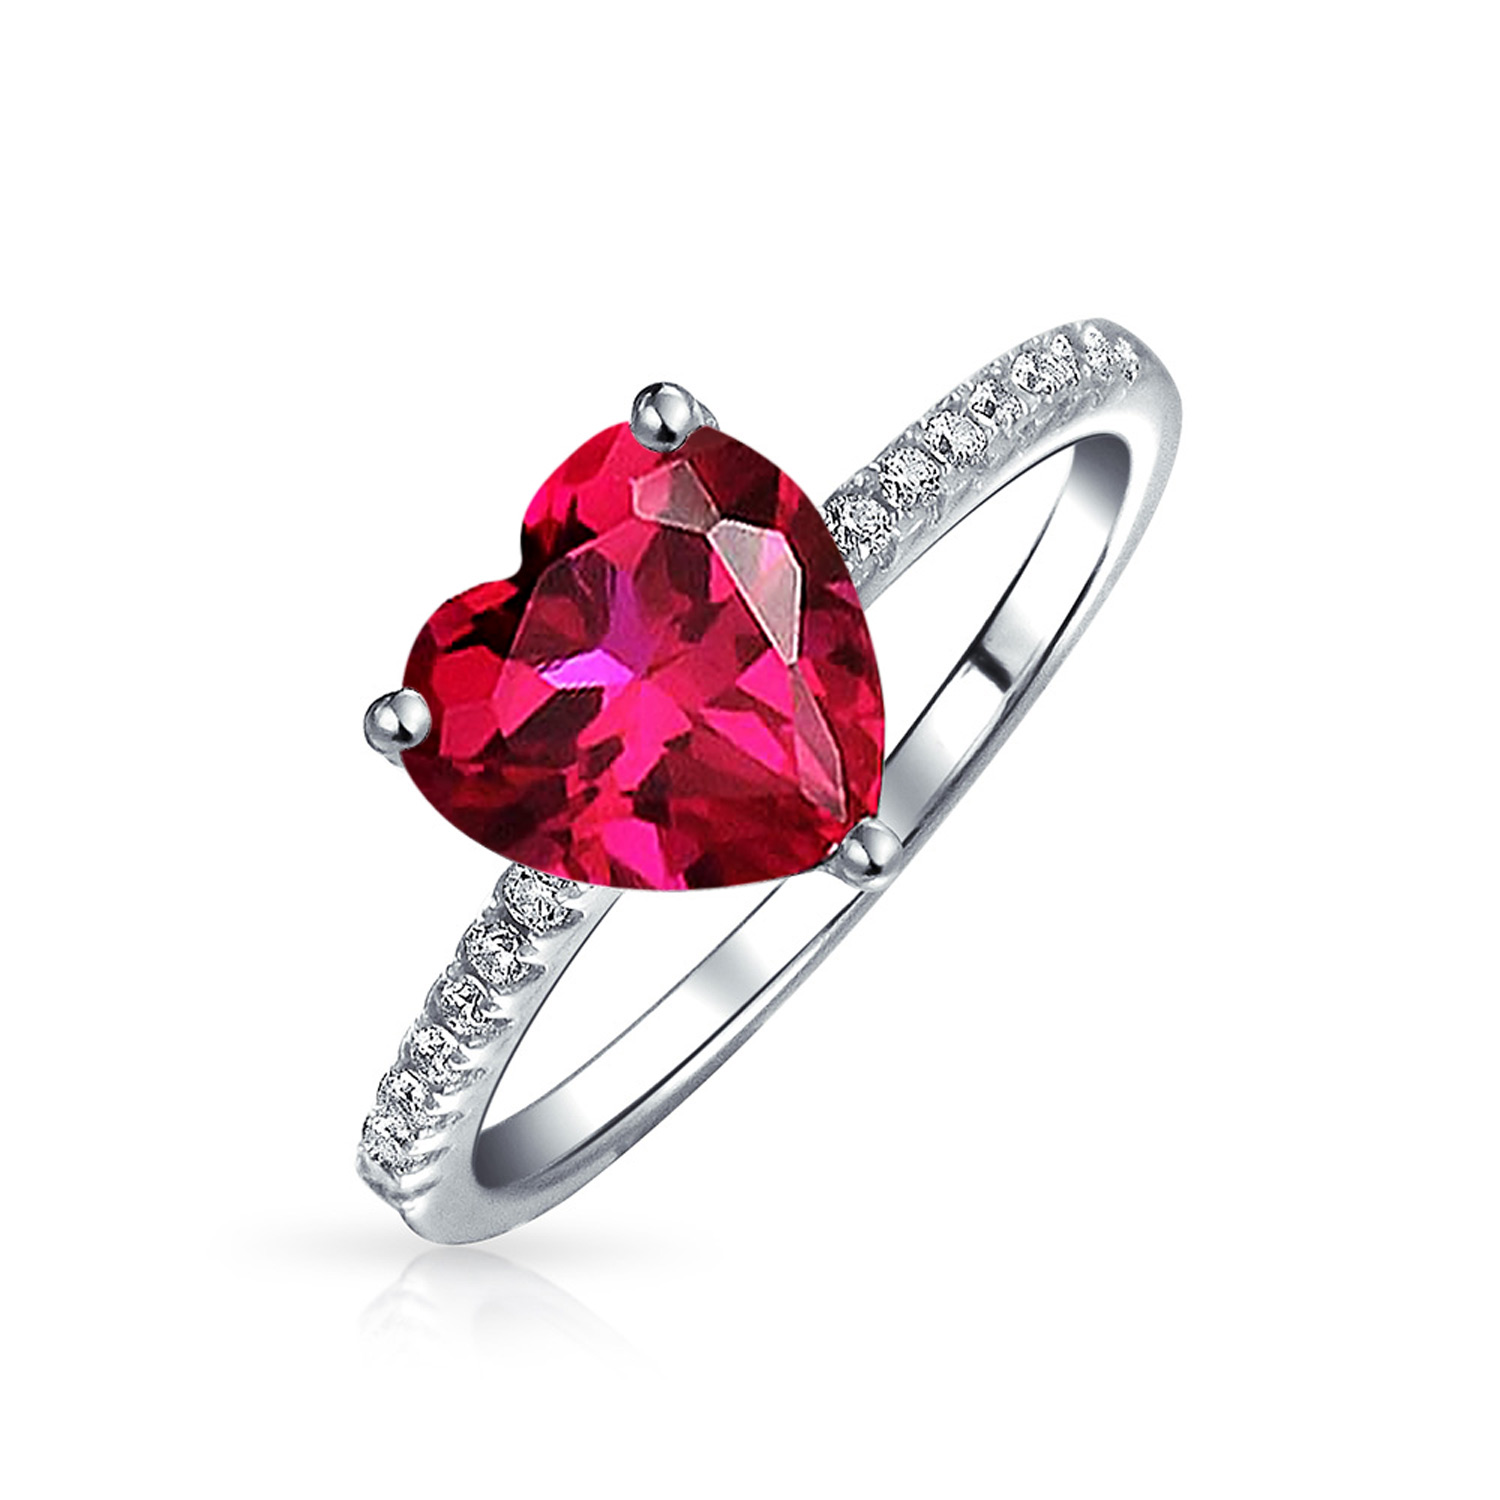 Princess Kylie Red Pave Cubic Zirconia Flower Shaped Ring Rhodium Plated Sterling Silver Size 5